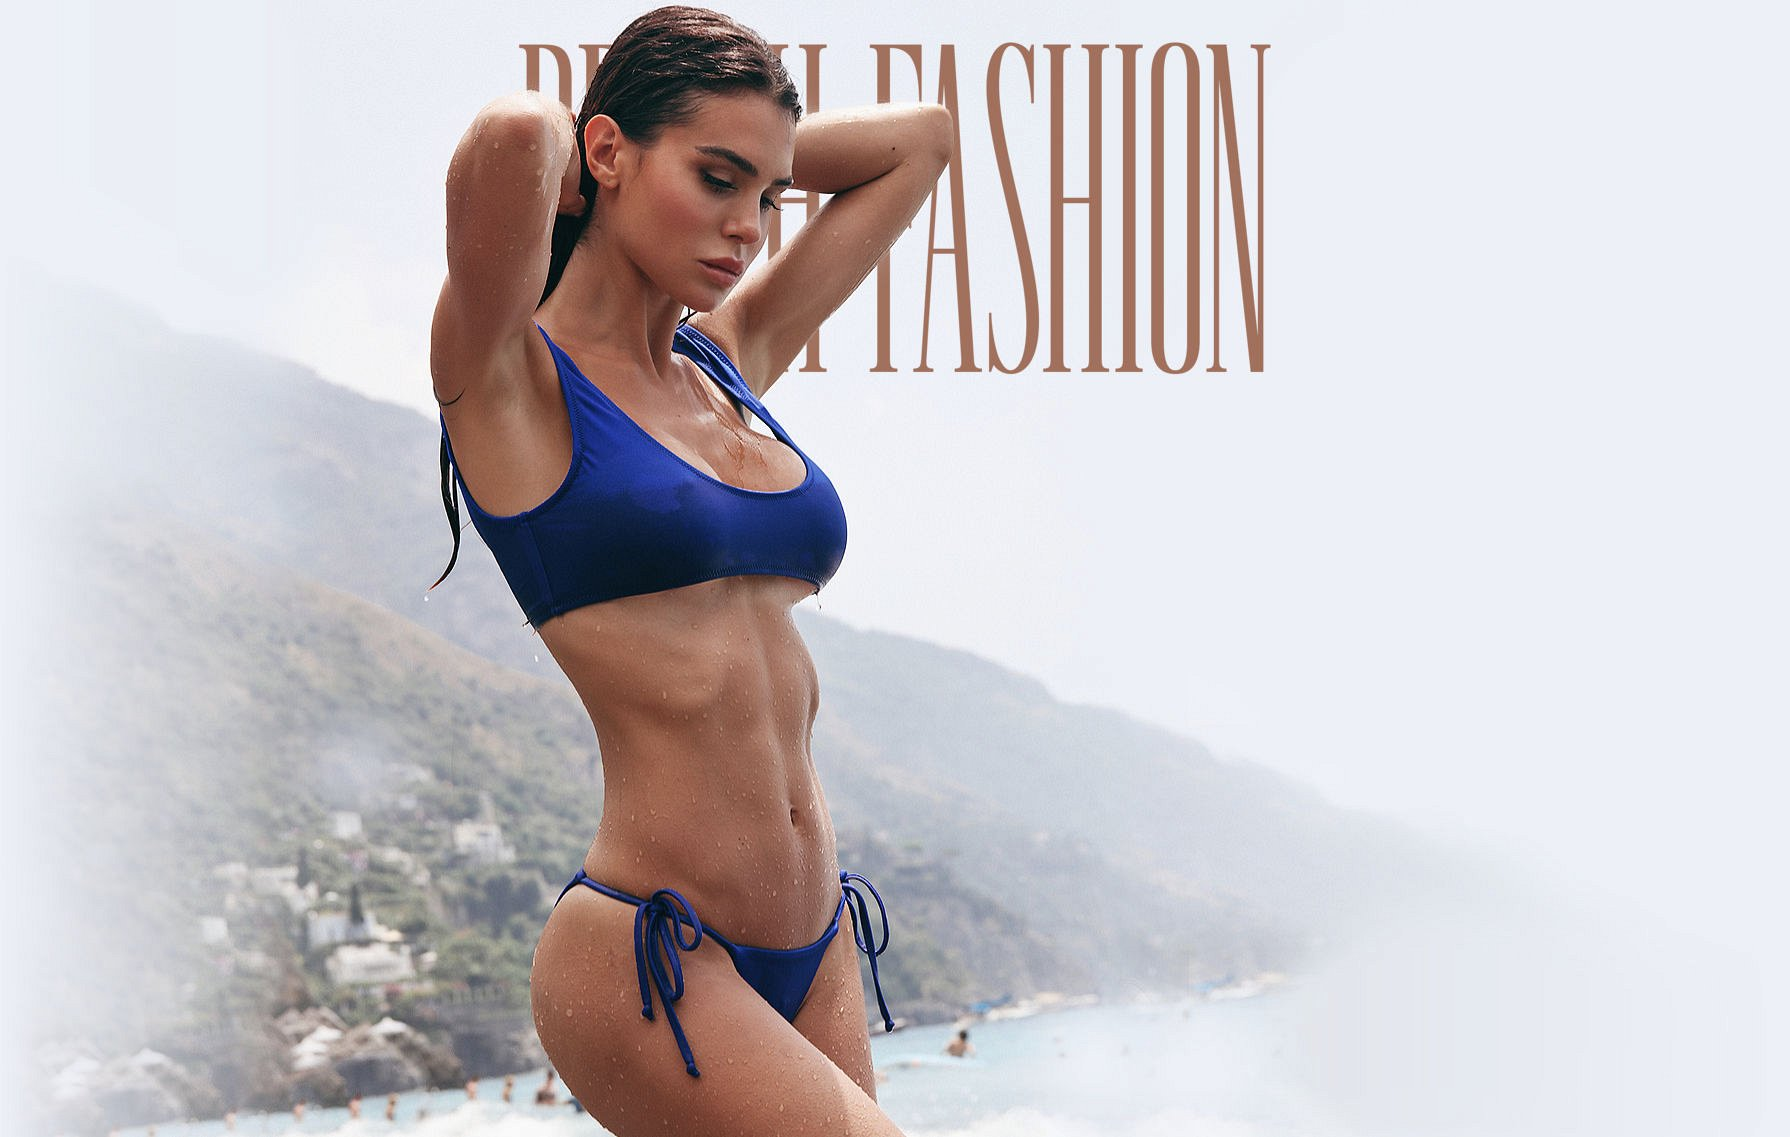 2019 Silvia Caruso nudes (23 photo), Pussy, Sideboobs, Boobs, butt 2015